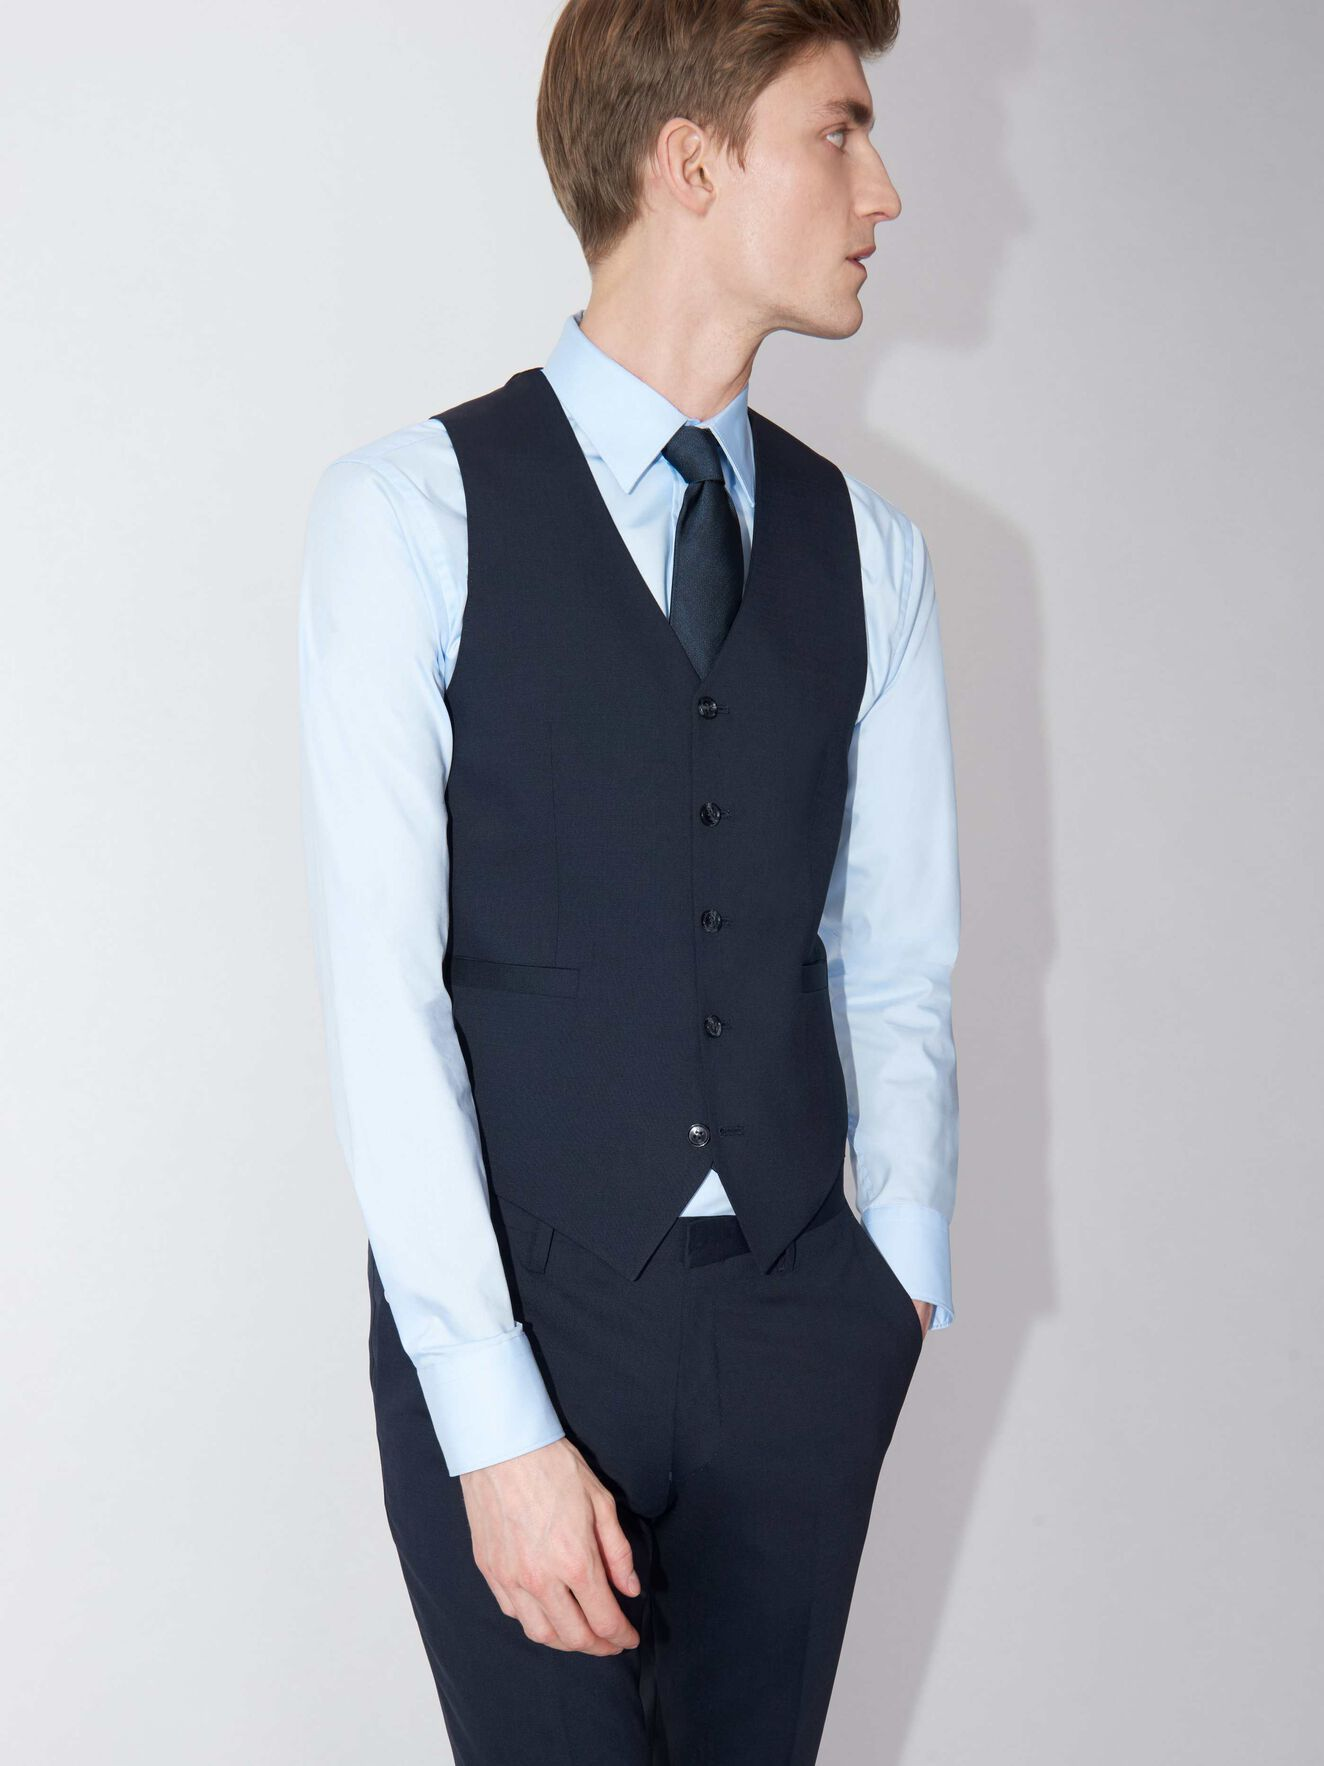 Litt Waistcoat in Sky Captain from Tiger of Sweden